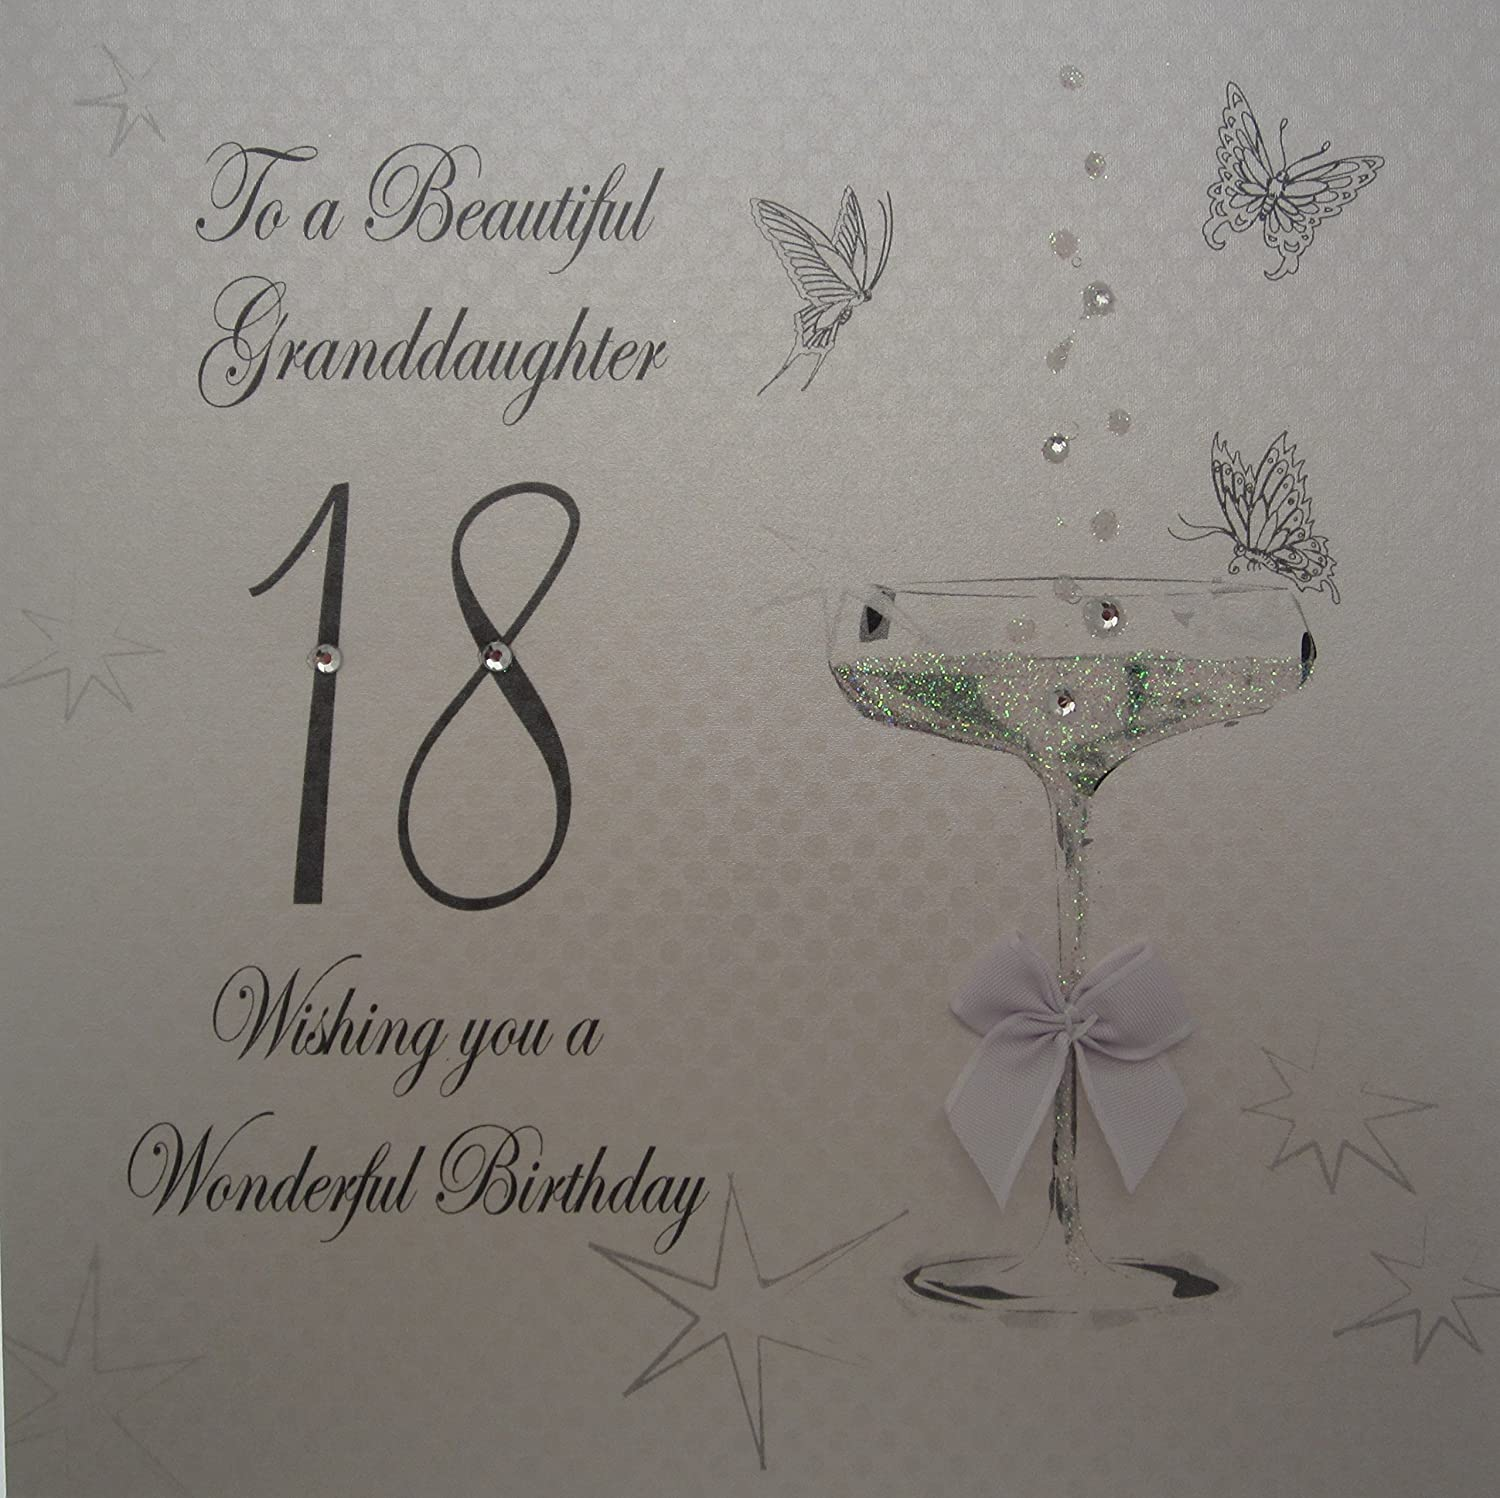 WHITE COTTON CARDS To A Beautiful Granddaughter 18 Handmade 18th Birthday Card Coupe Glass